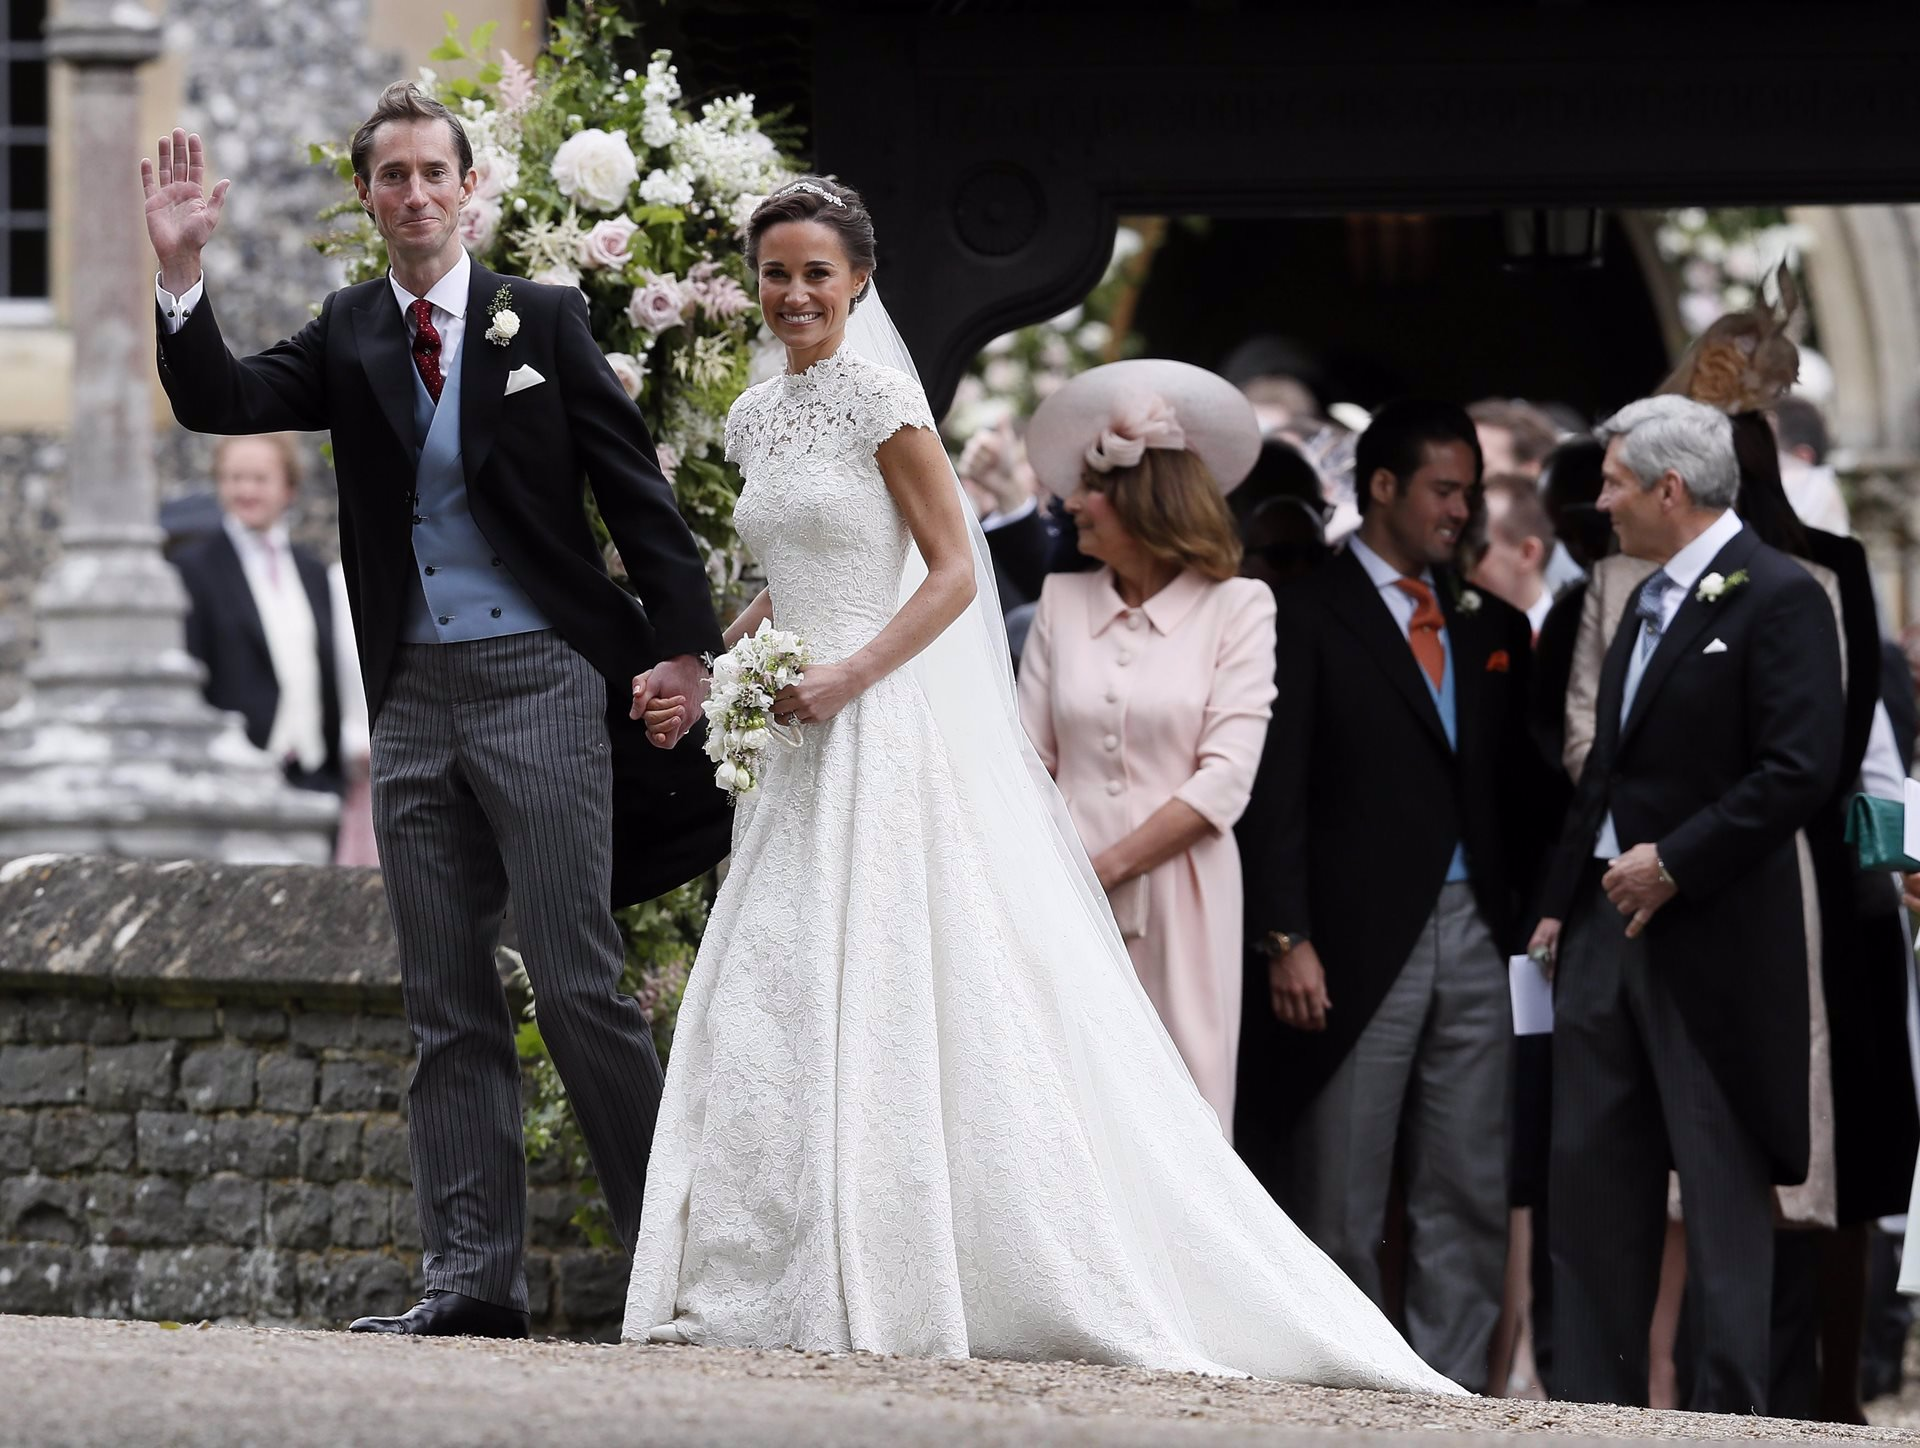 Kate Middleton Vs Pippa Middleton Qué Vestido De Novia Te